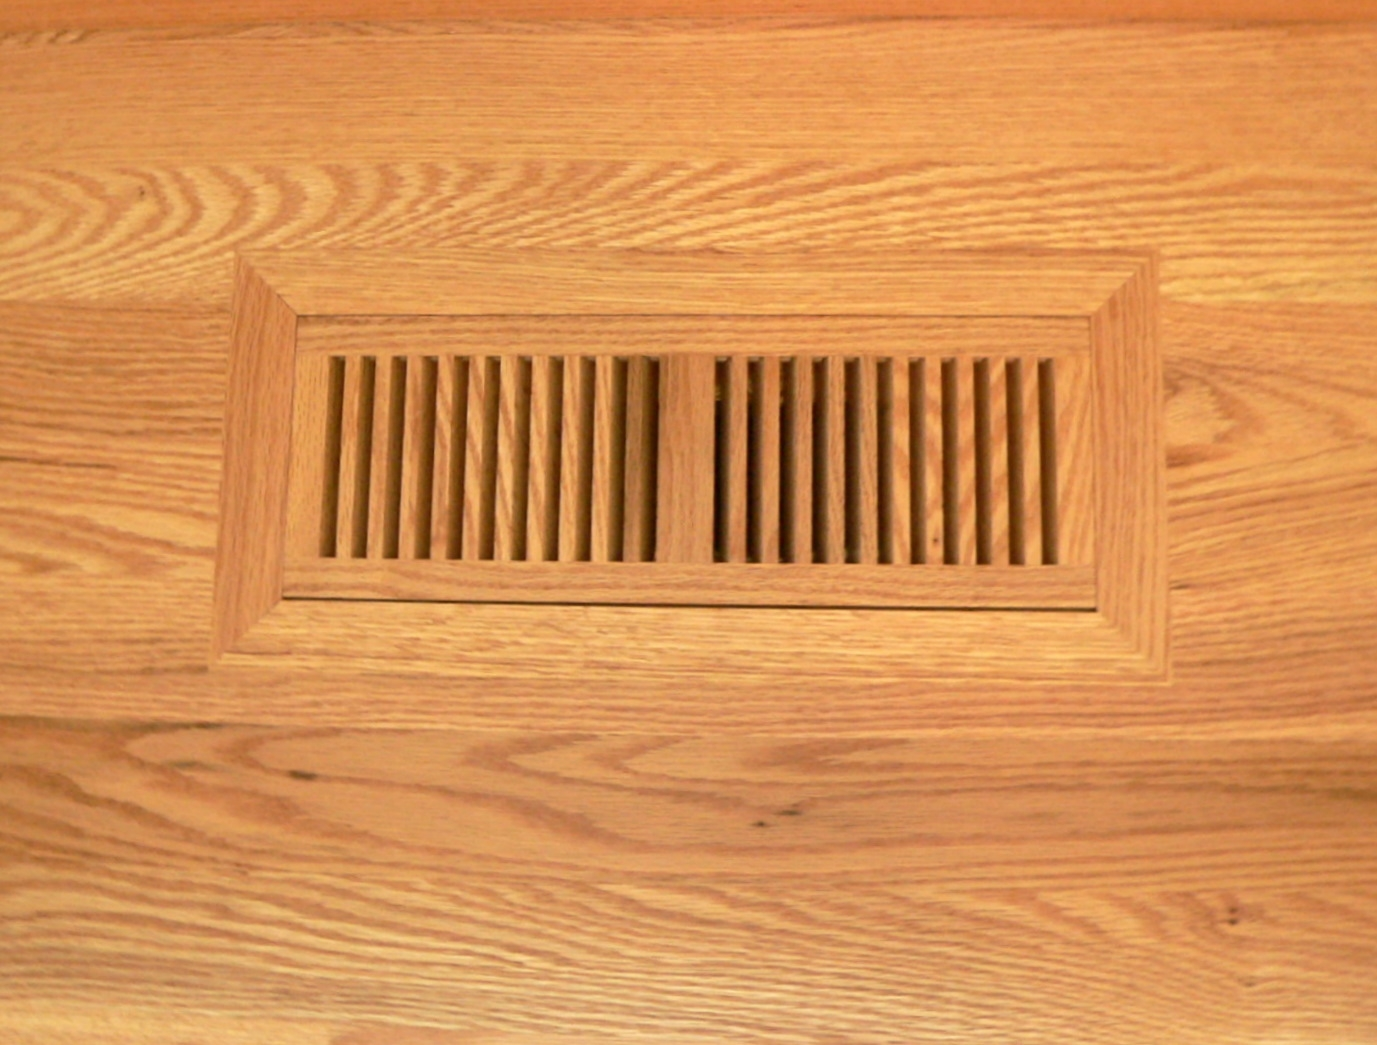 Wood Floor Heat Vents